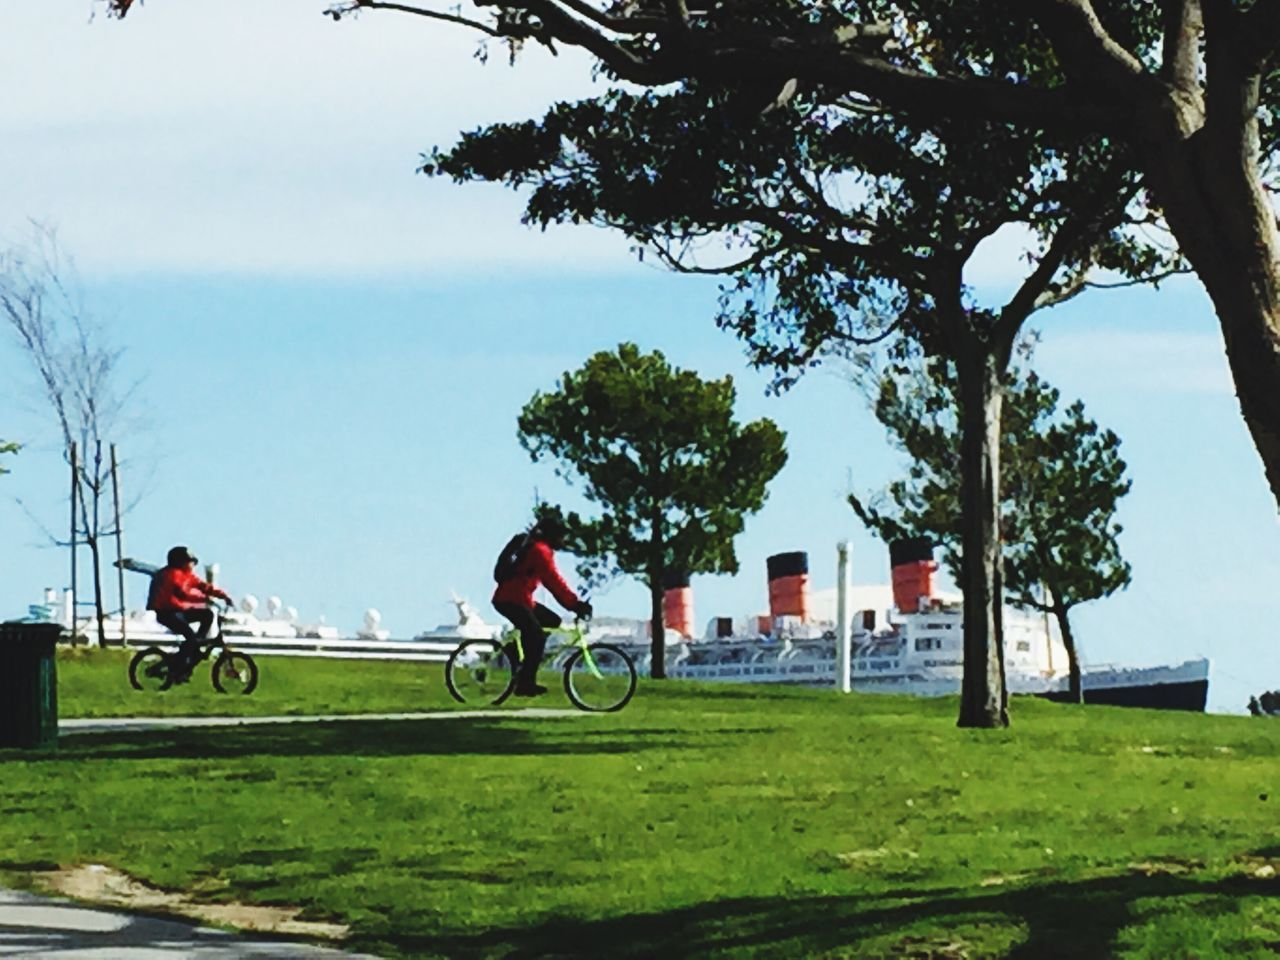 Transportation Bicycling Ships At Dock Park Green Color Land Vehicle Real People Sky Grass Transportation Outdoors